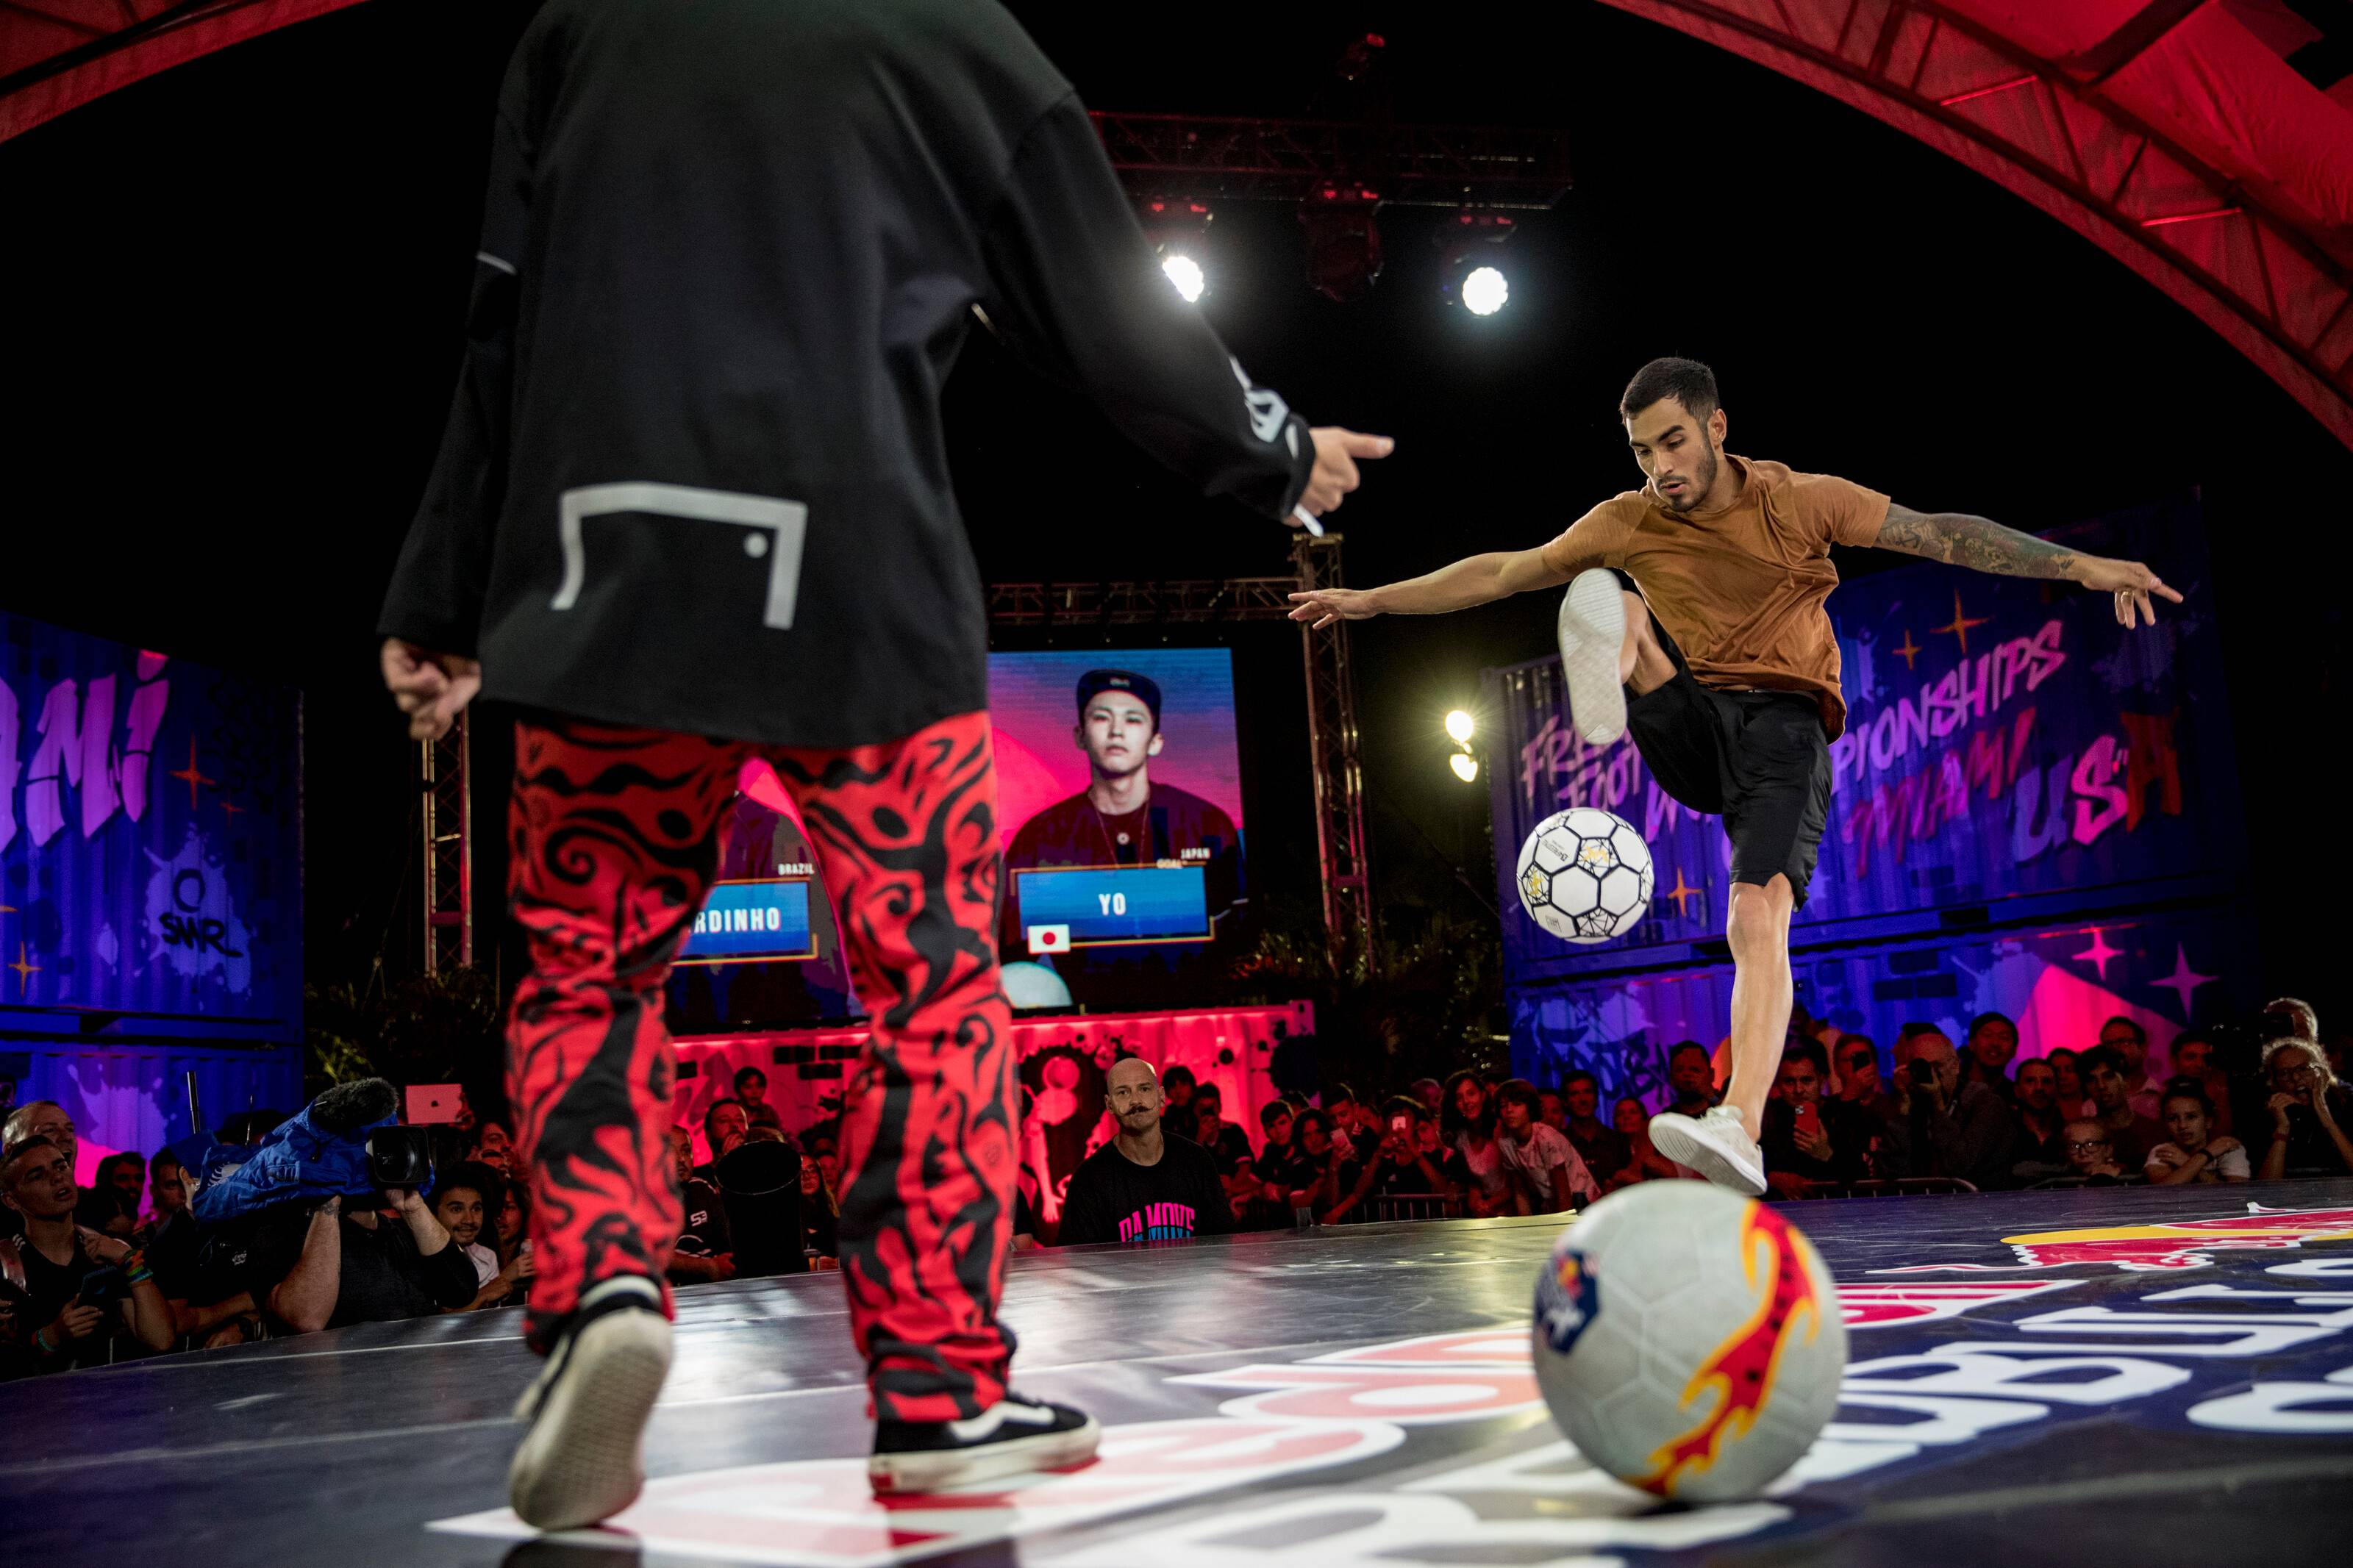 Ricardinho gives Brazil its first Red Bull Street Style World Championship